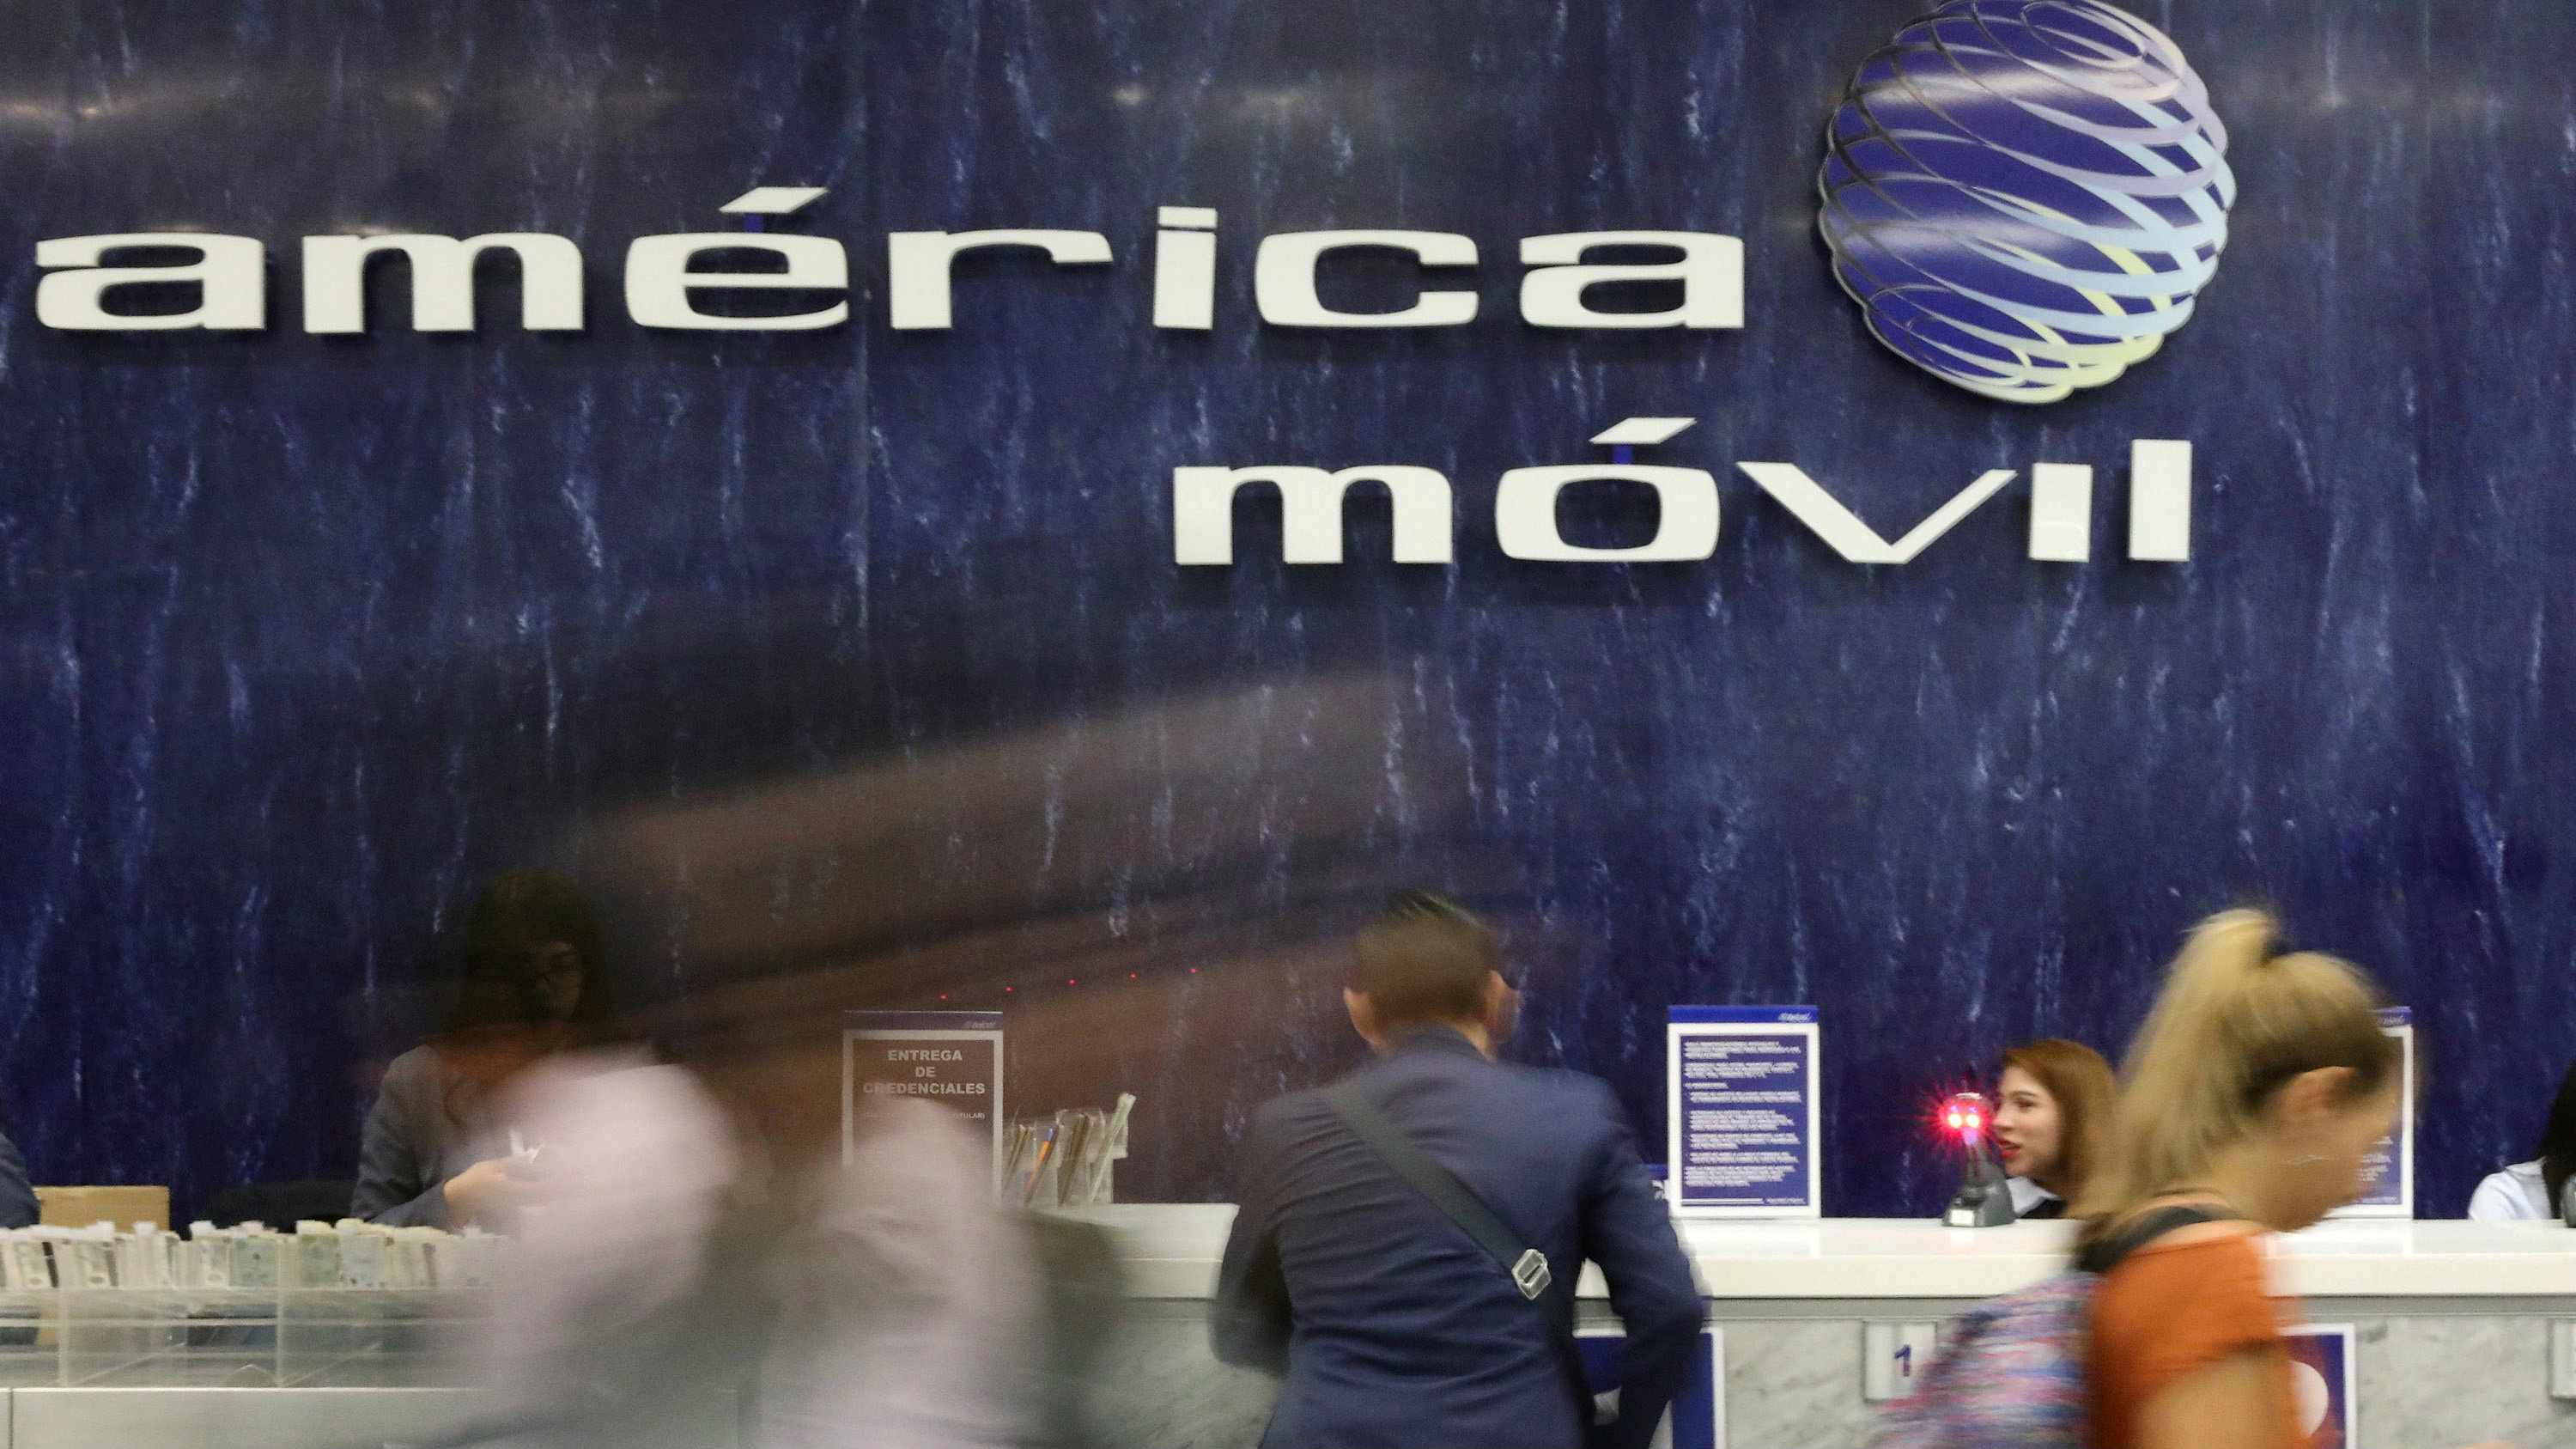 America Movil corporate offices in Mexico City